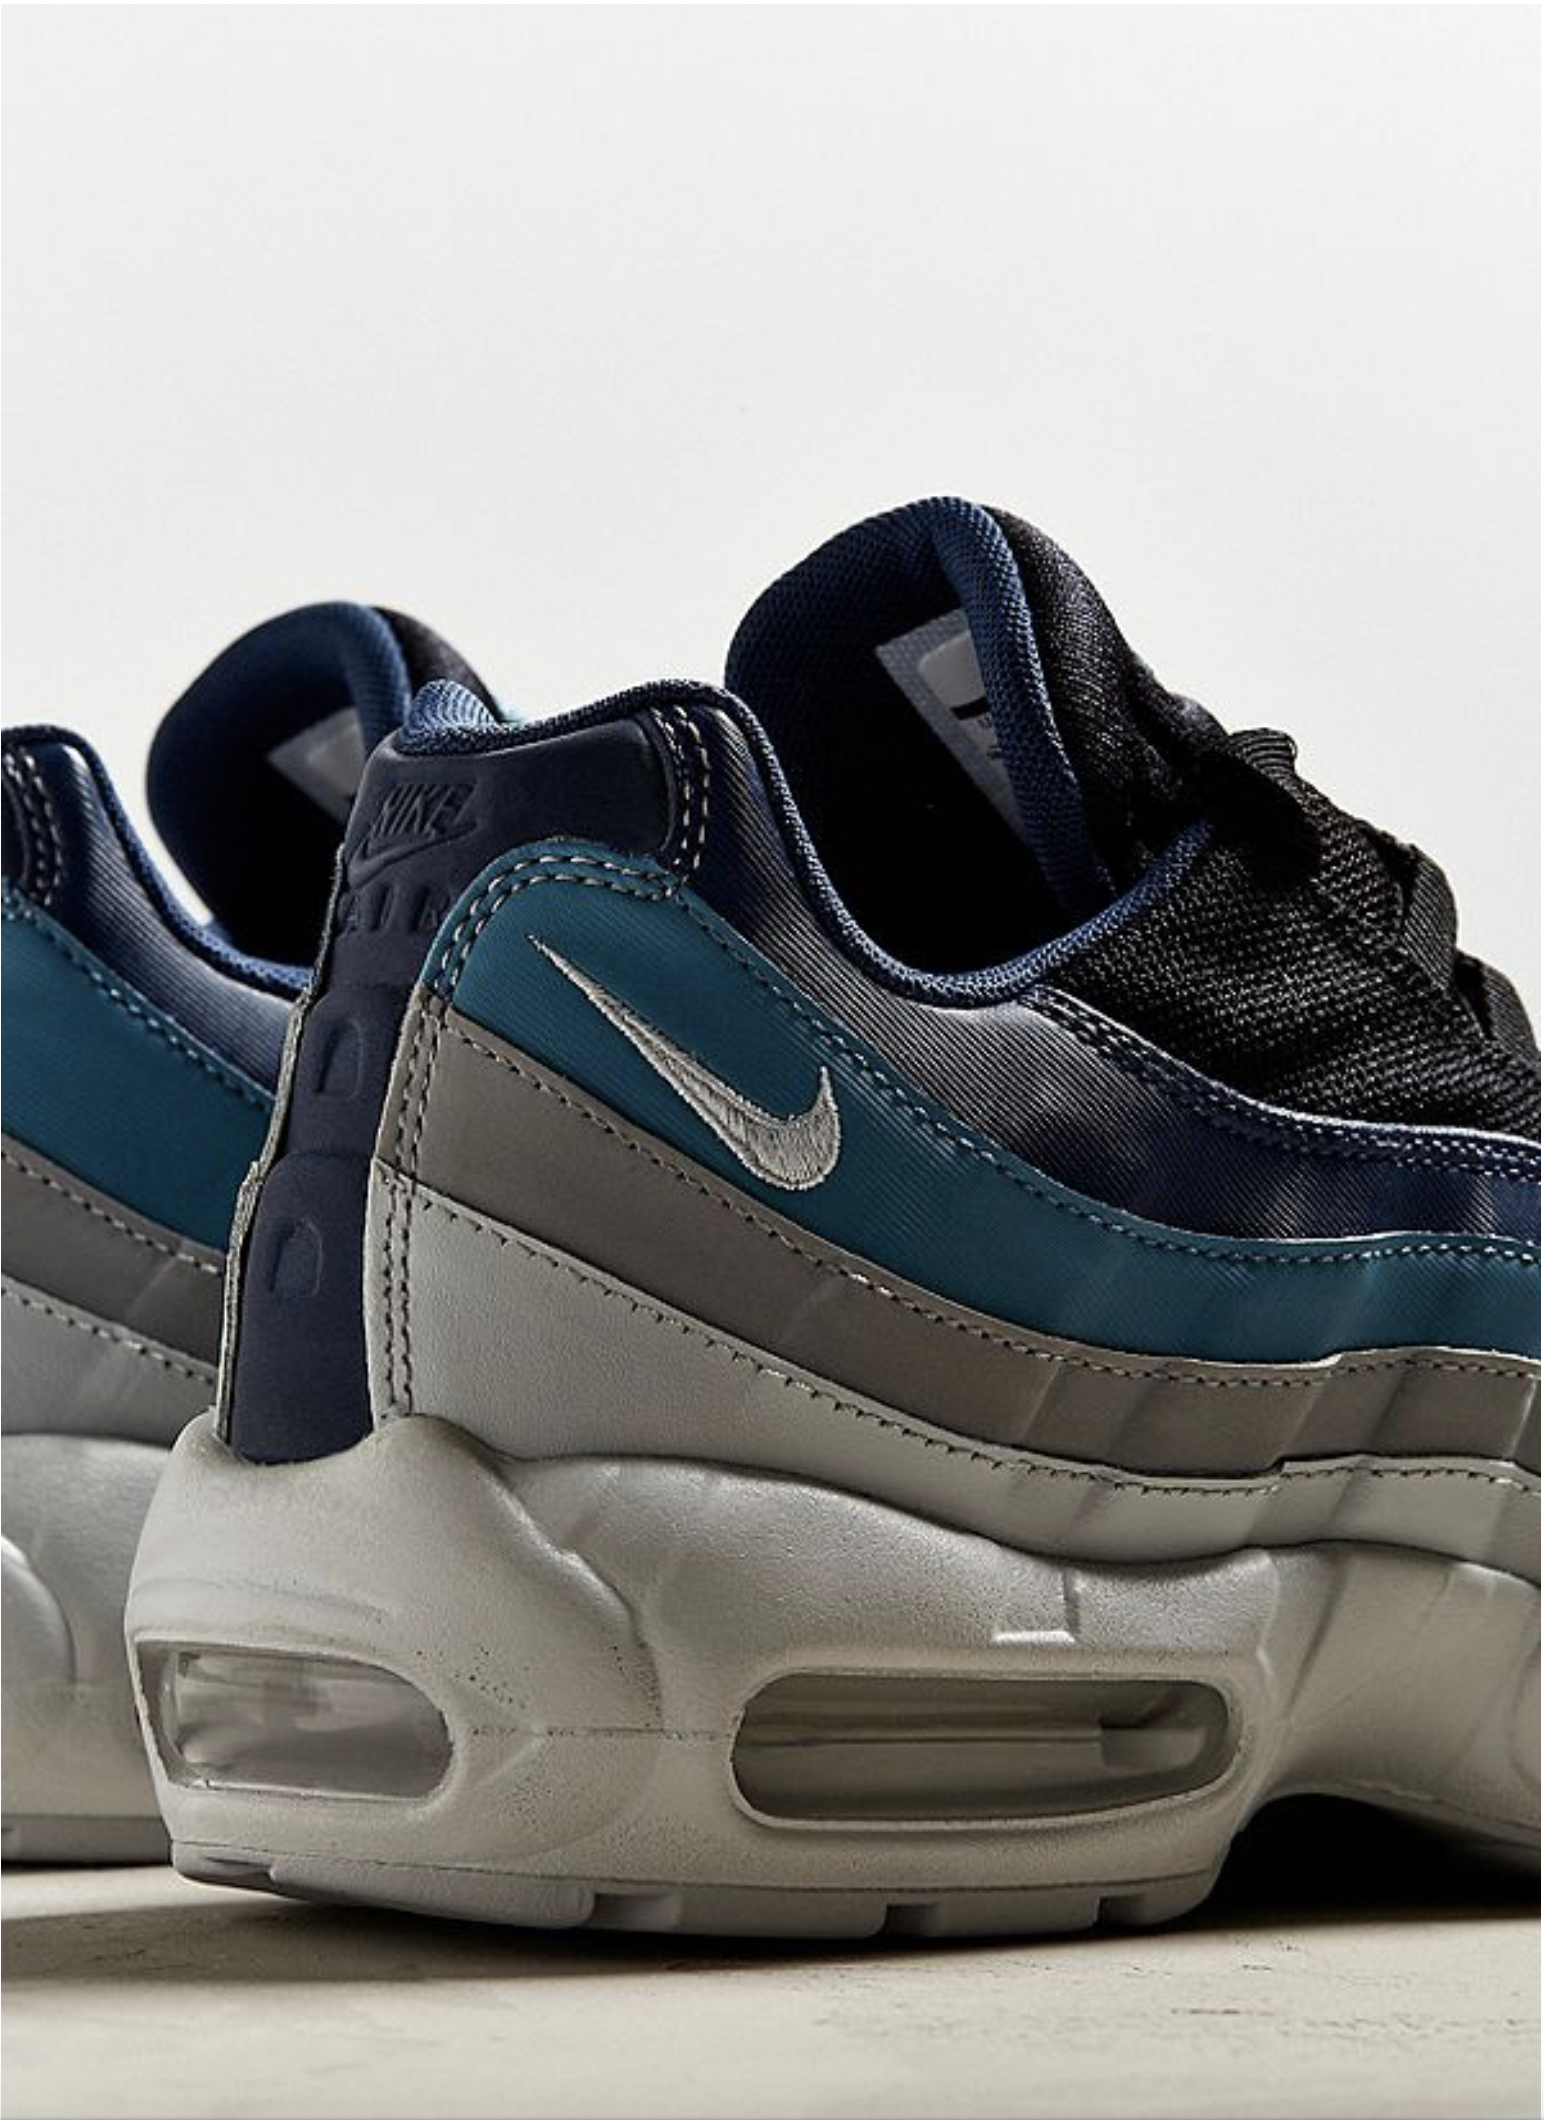 buy popular 56a1f ab33c Nike Air Max 95 Essential Sneakers    160 USD. SHOP NOW.